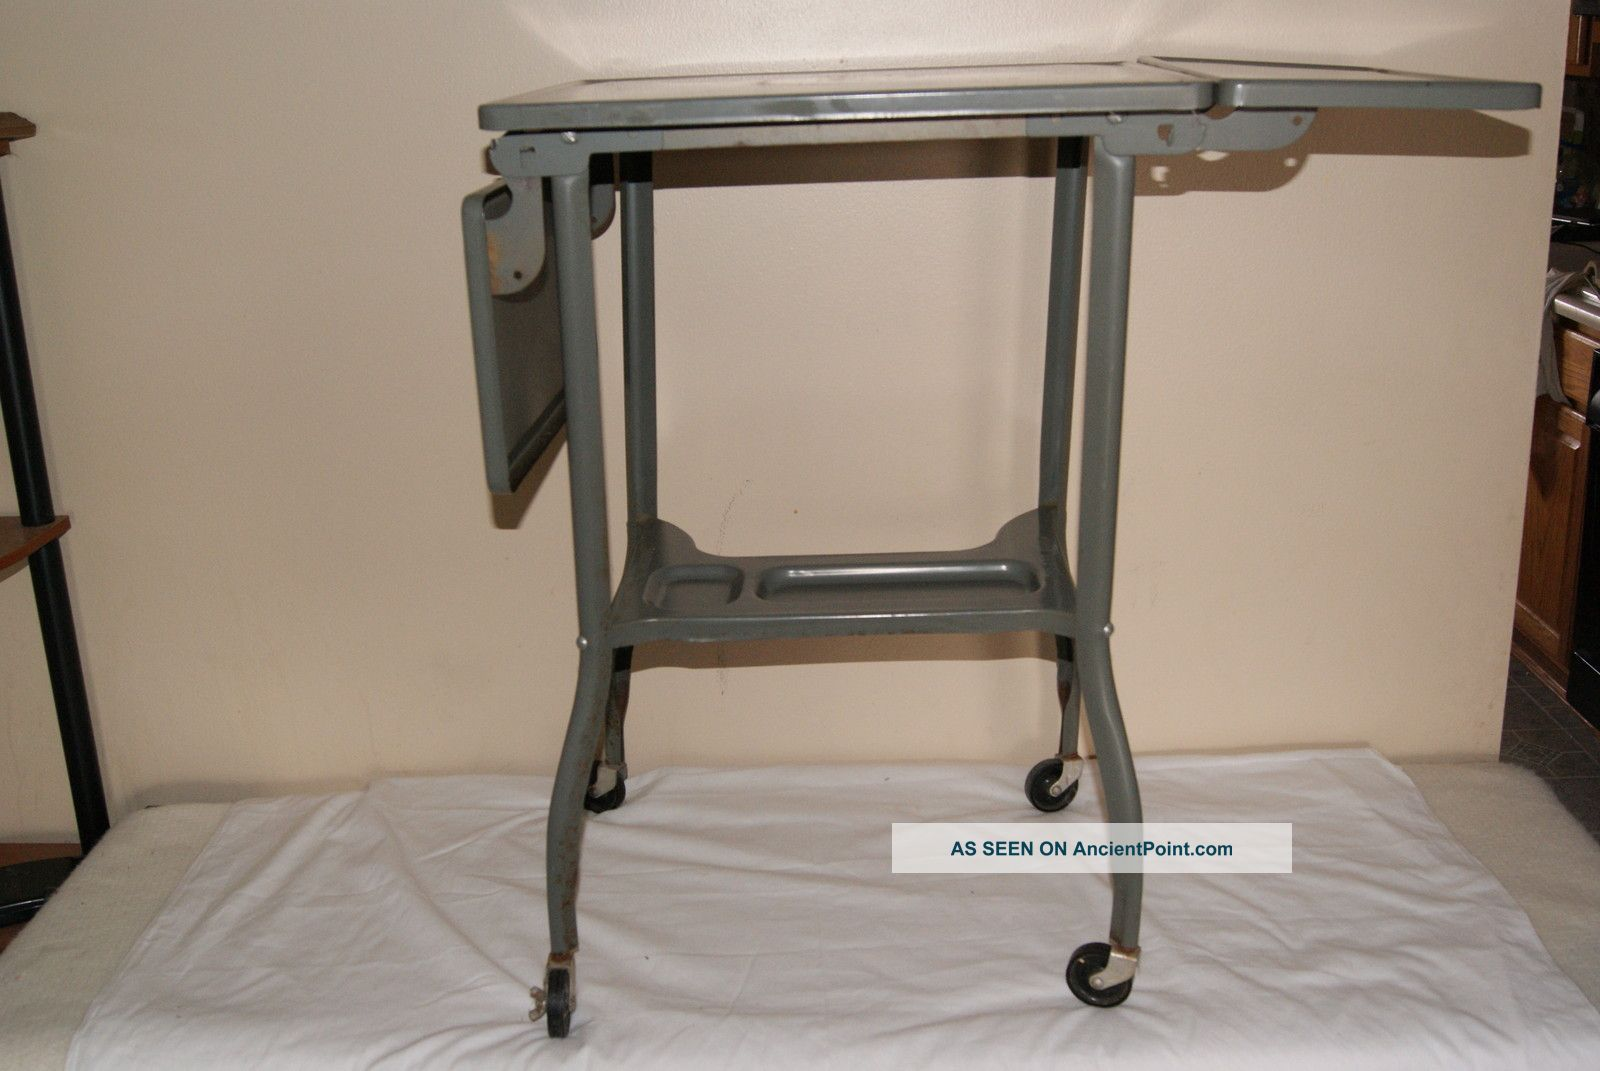 Vintage Toledo Metal Industrial Age Folding Table Workbench Machinist Wheels Other photo